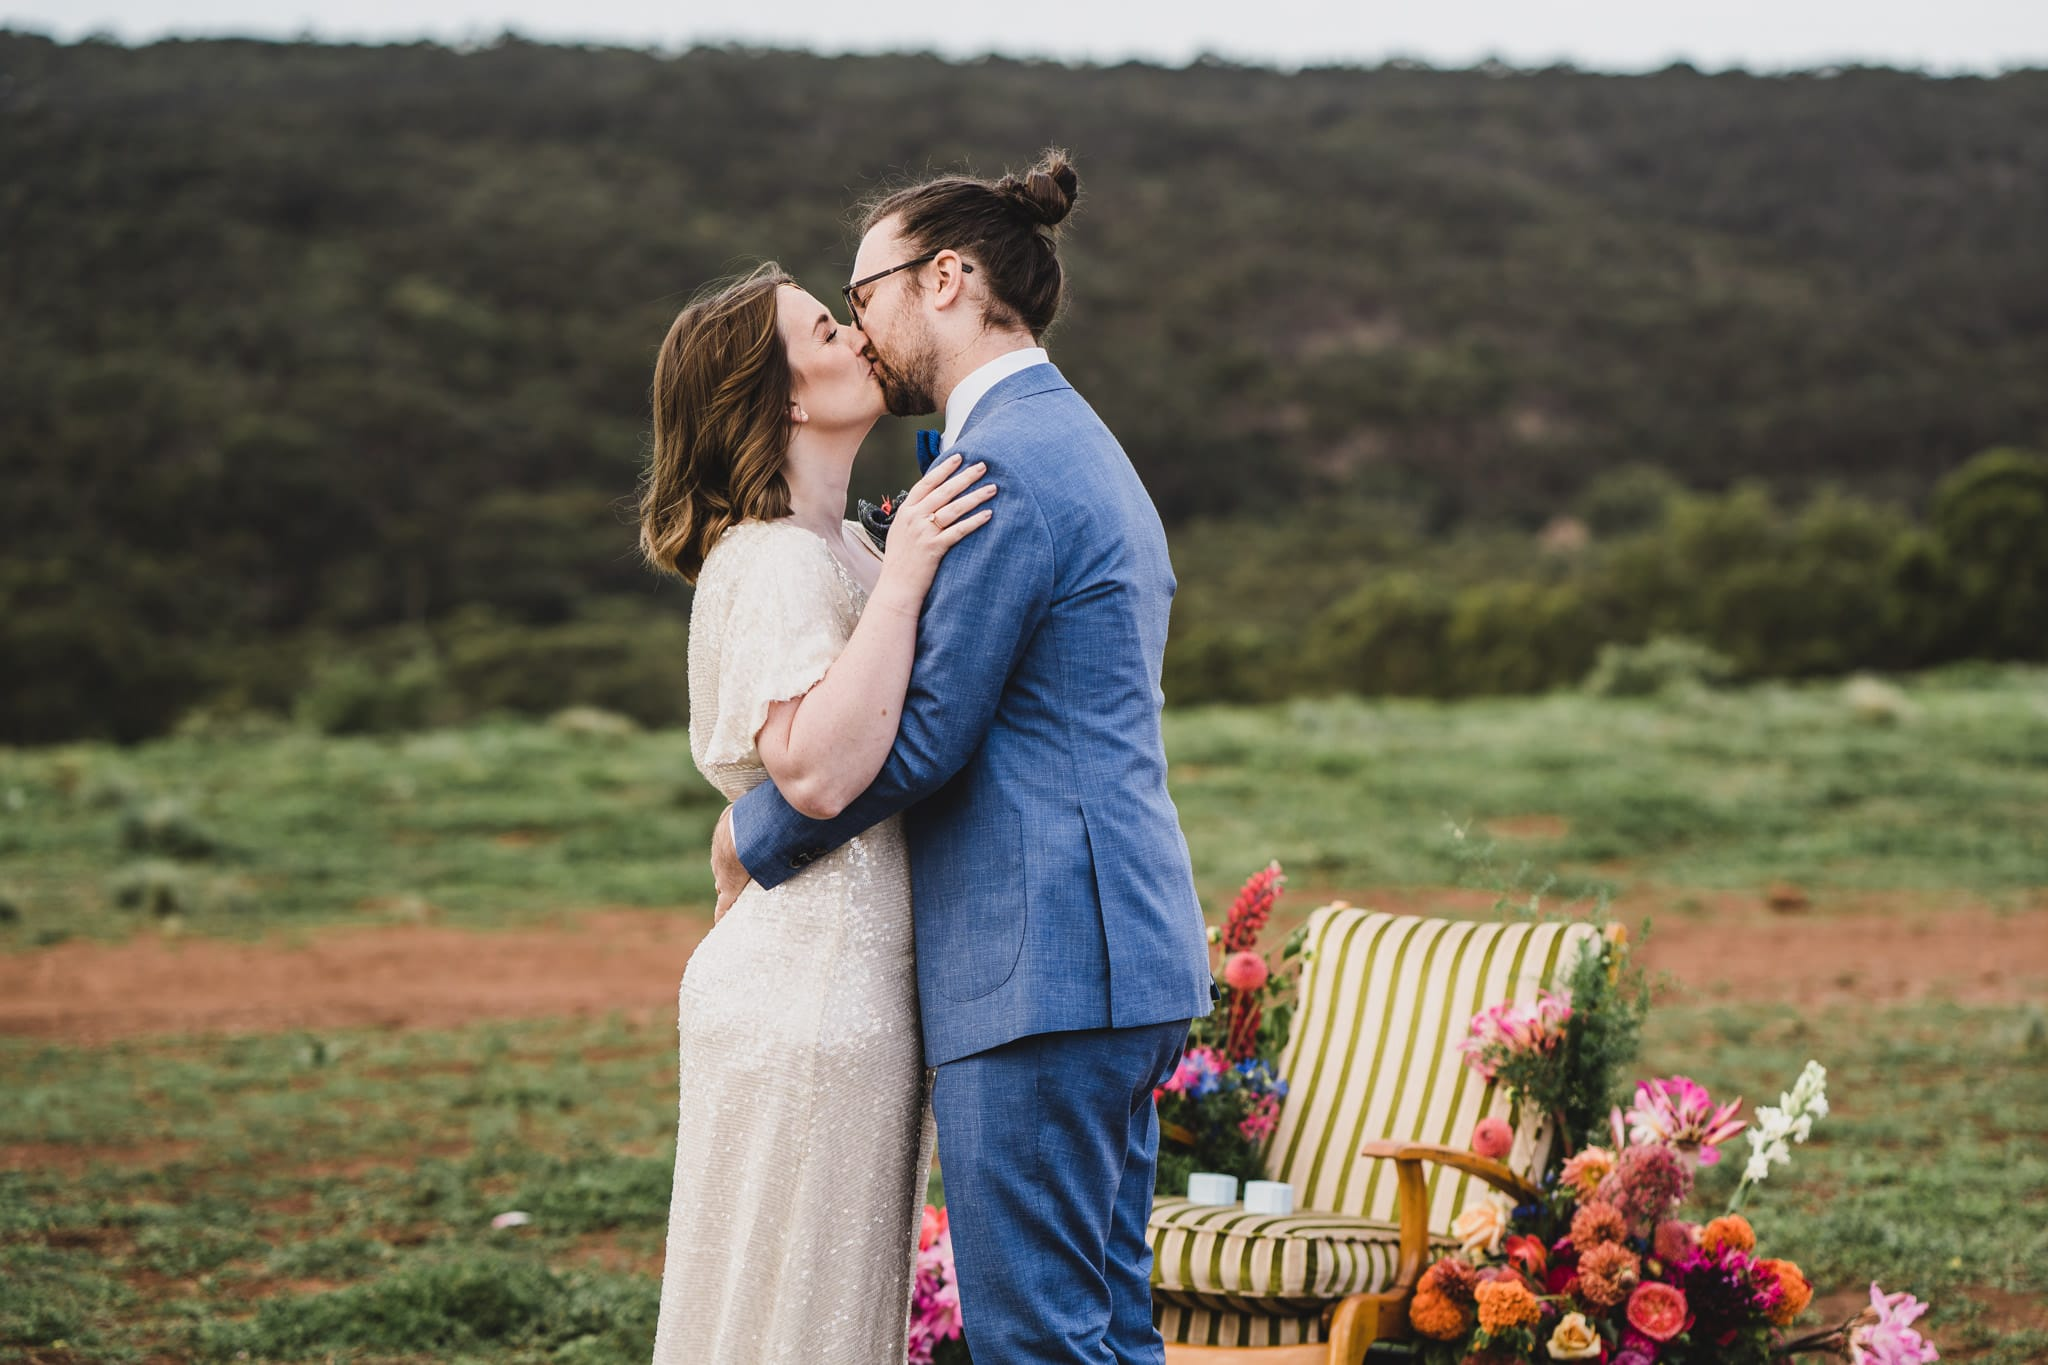 Kate & Brodie's first kiss at their Camp Sunnystones wedding festival